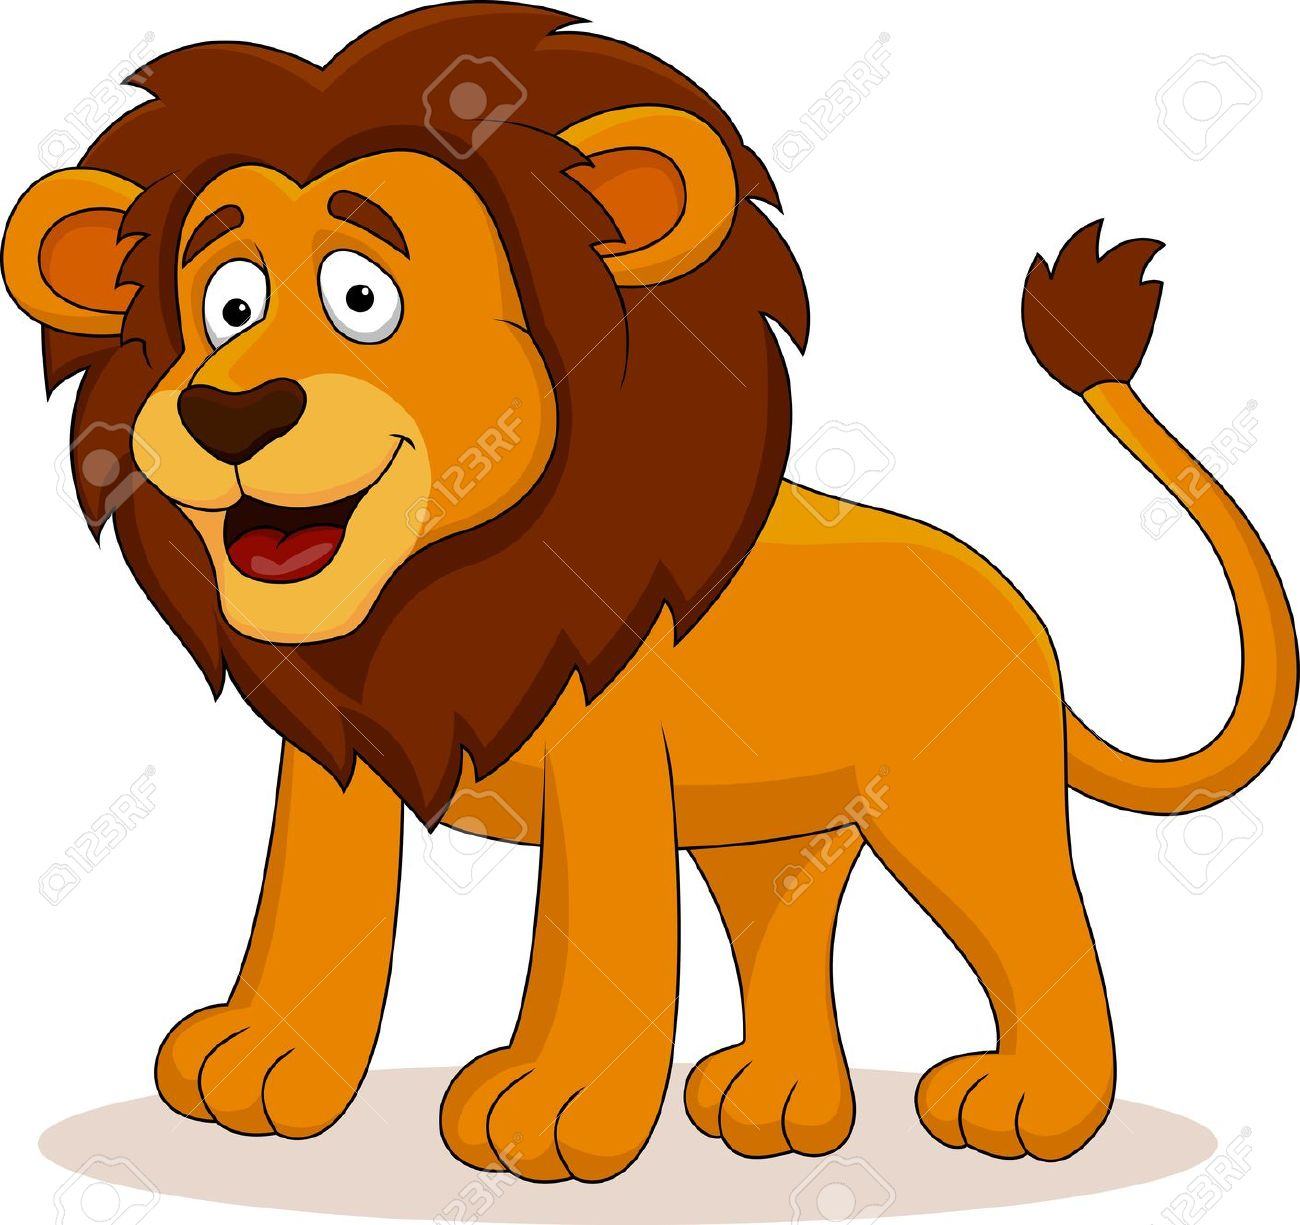 Lion clipart funny #1